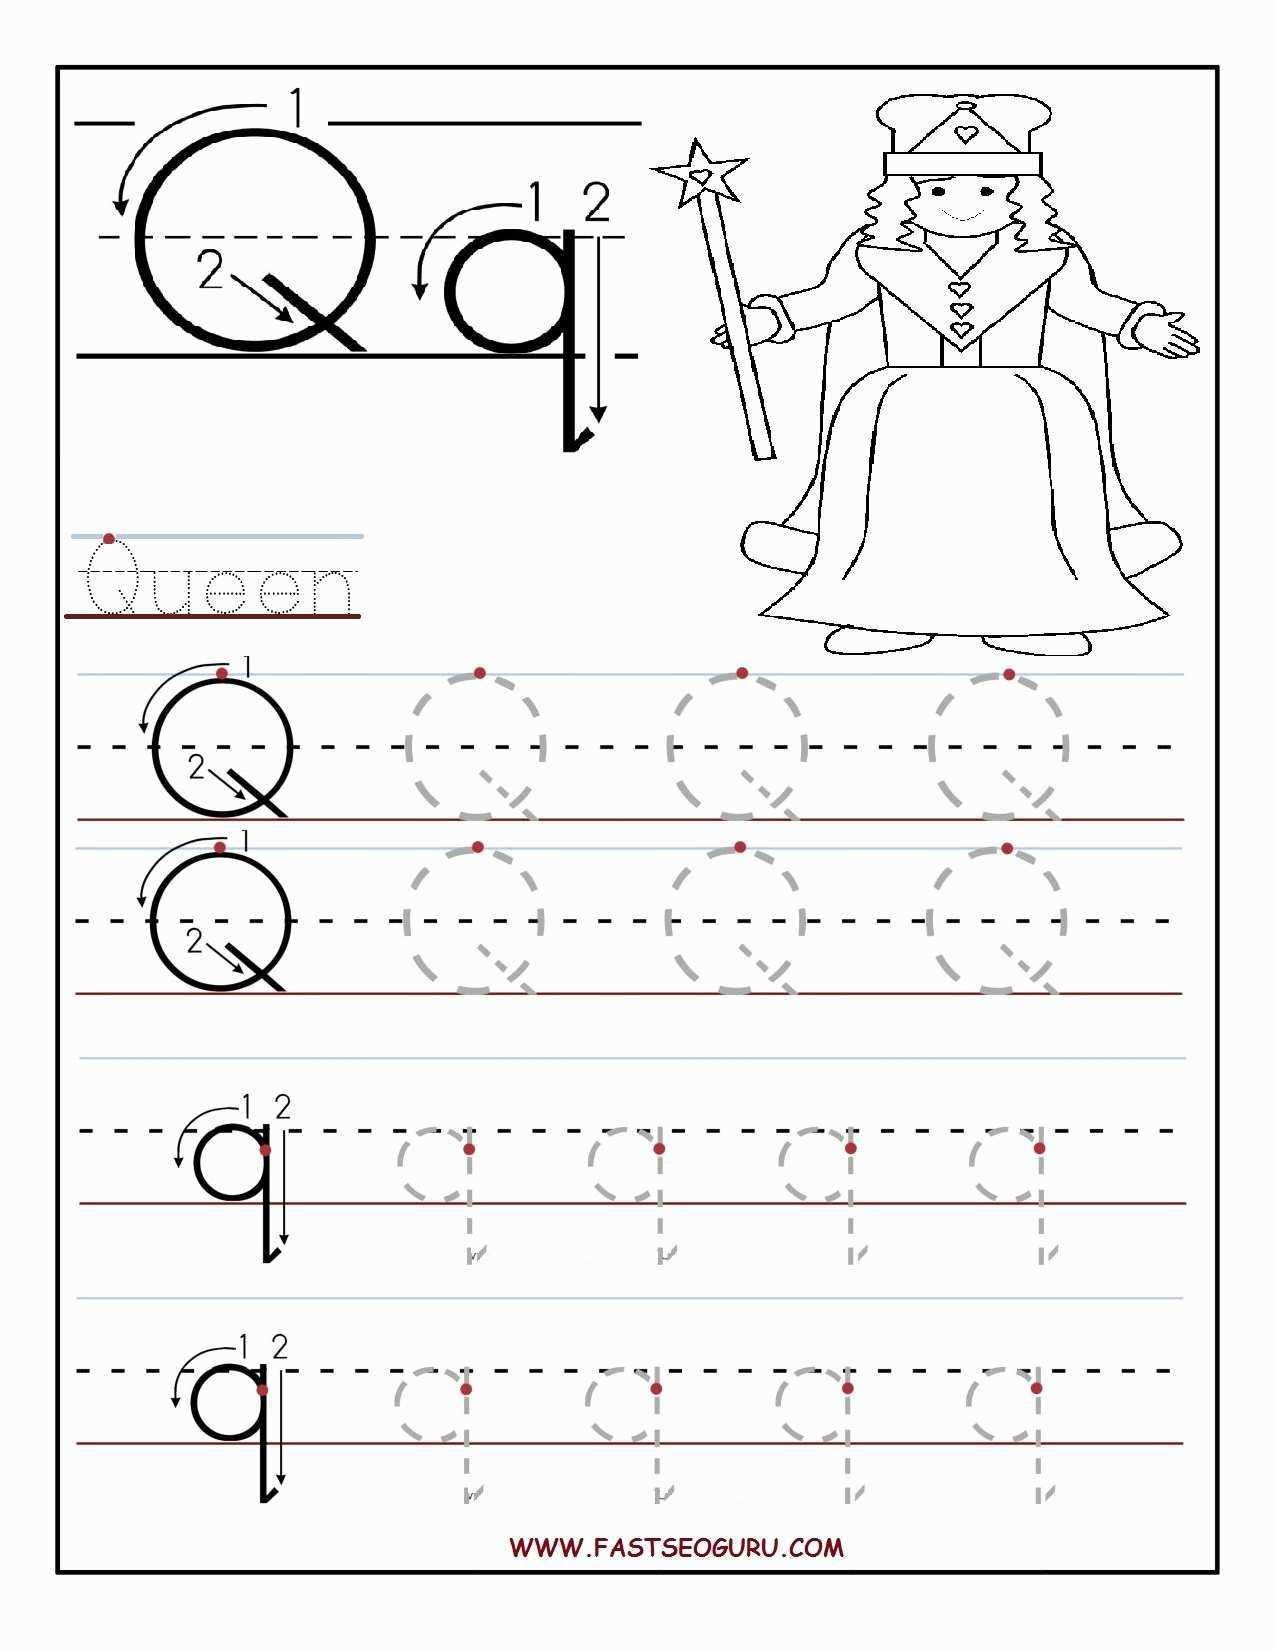 small resolution of Alphabet Tracing Worksheets For 3 Year Olds – Letter Worksheets